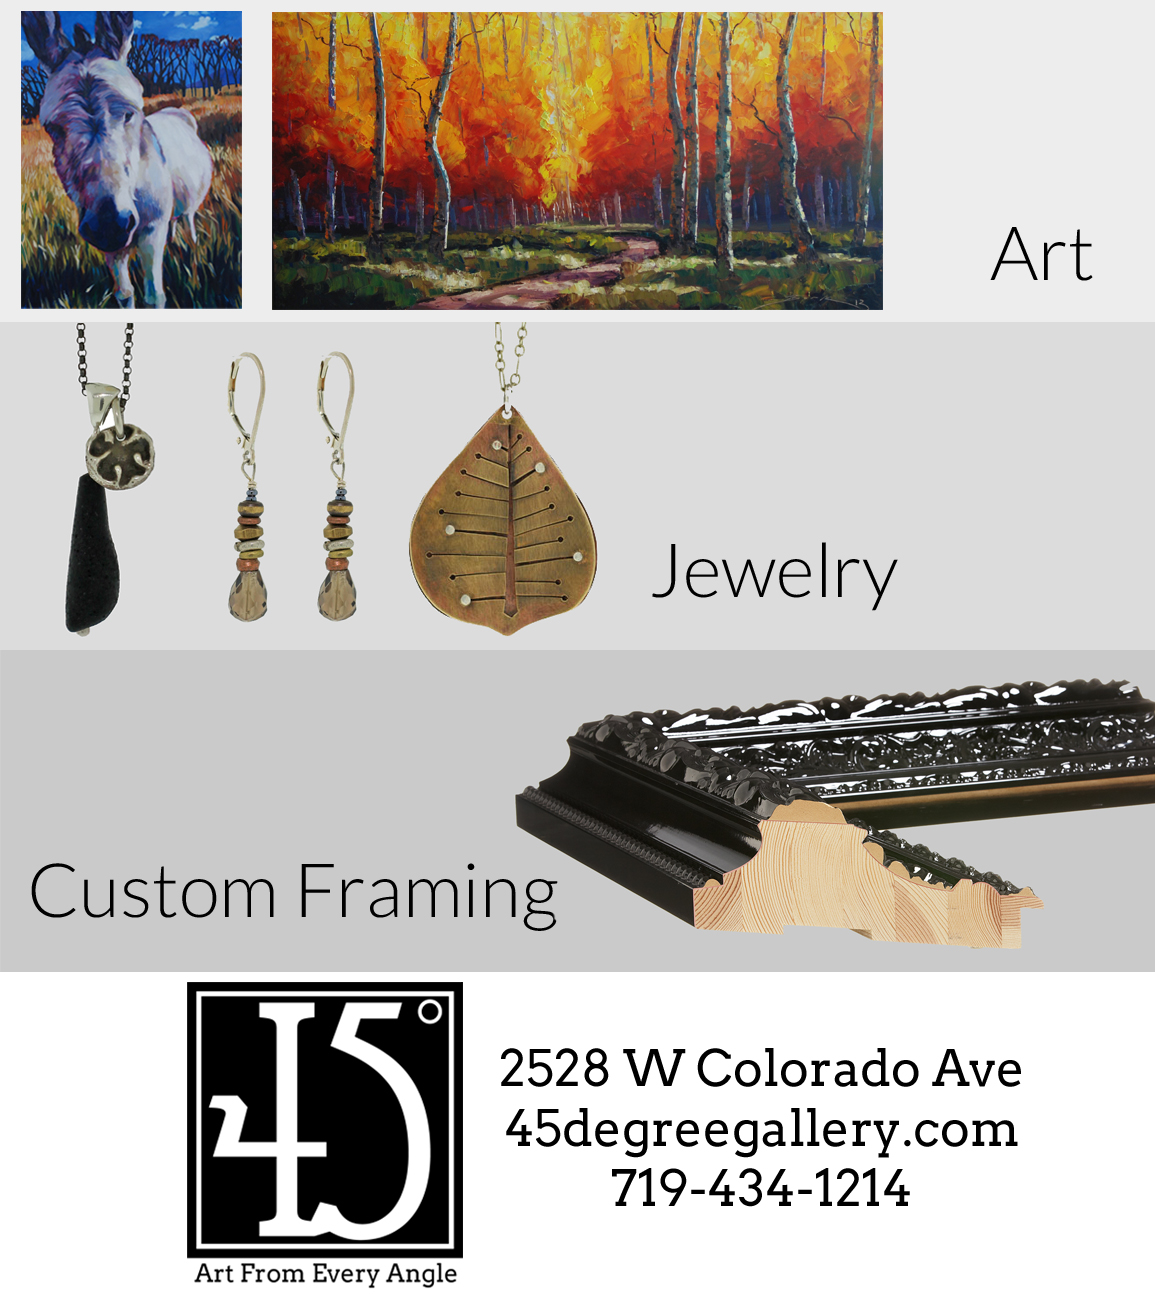 Look for our ad in Colorado Springs Style – 45 Degree Gallery